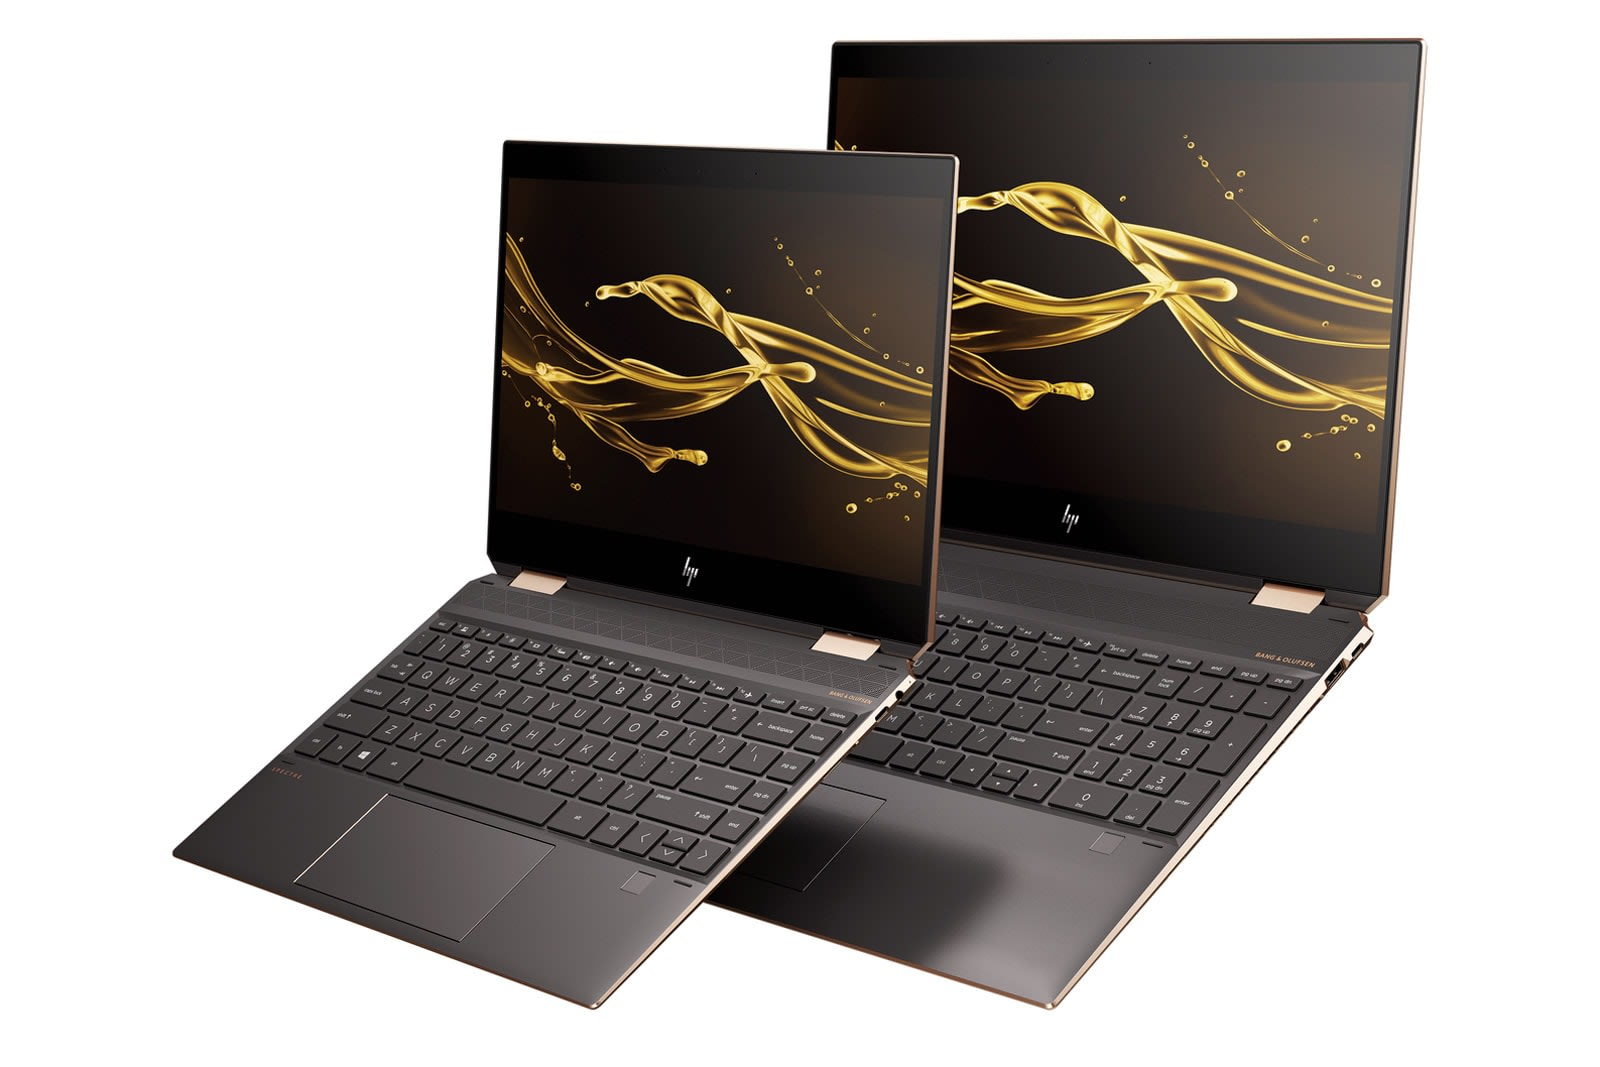 Hp Spectre X360 Review 2020.Hp S Latest Spectre X360 Laptops Boast Up To A 22 Hour